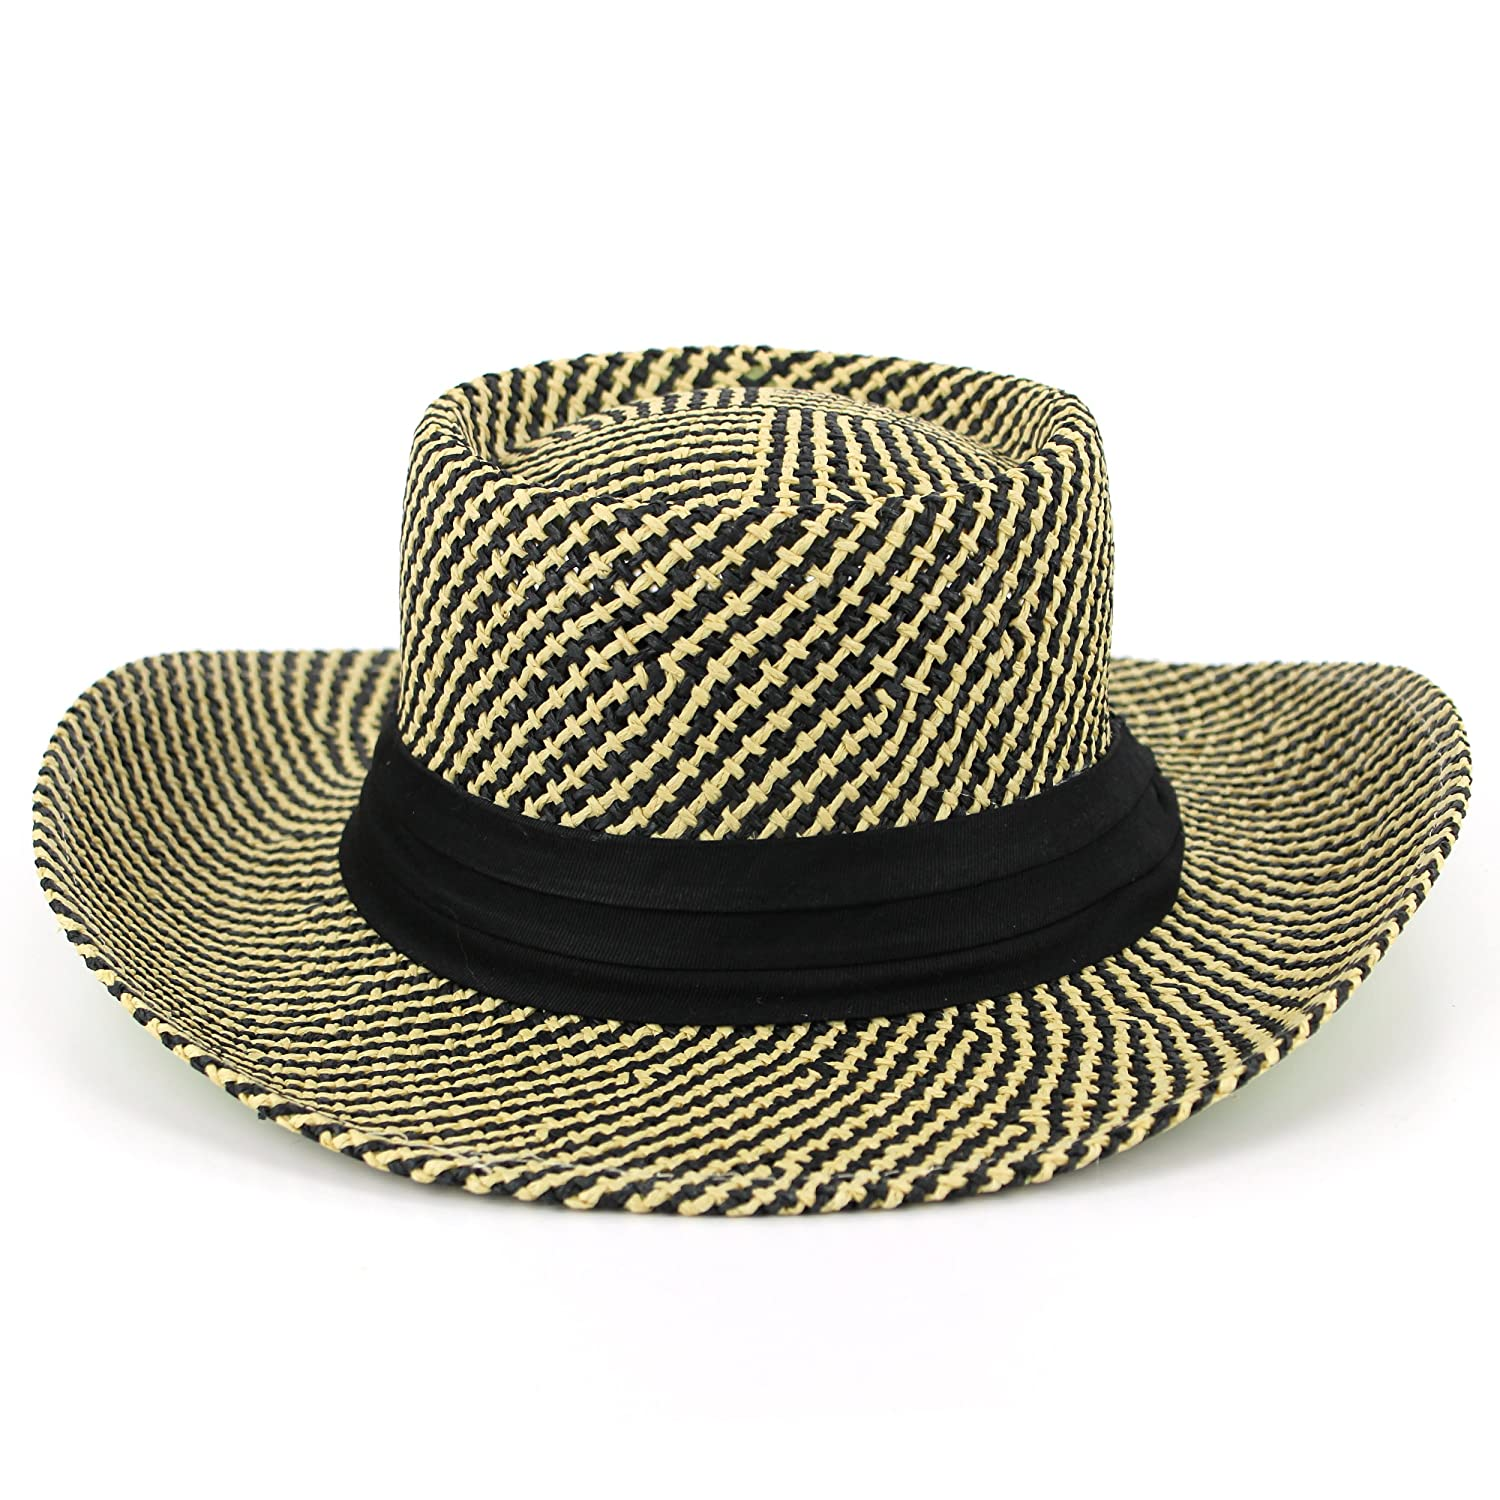 Straw hat black and natural lattice pattern with black band